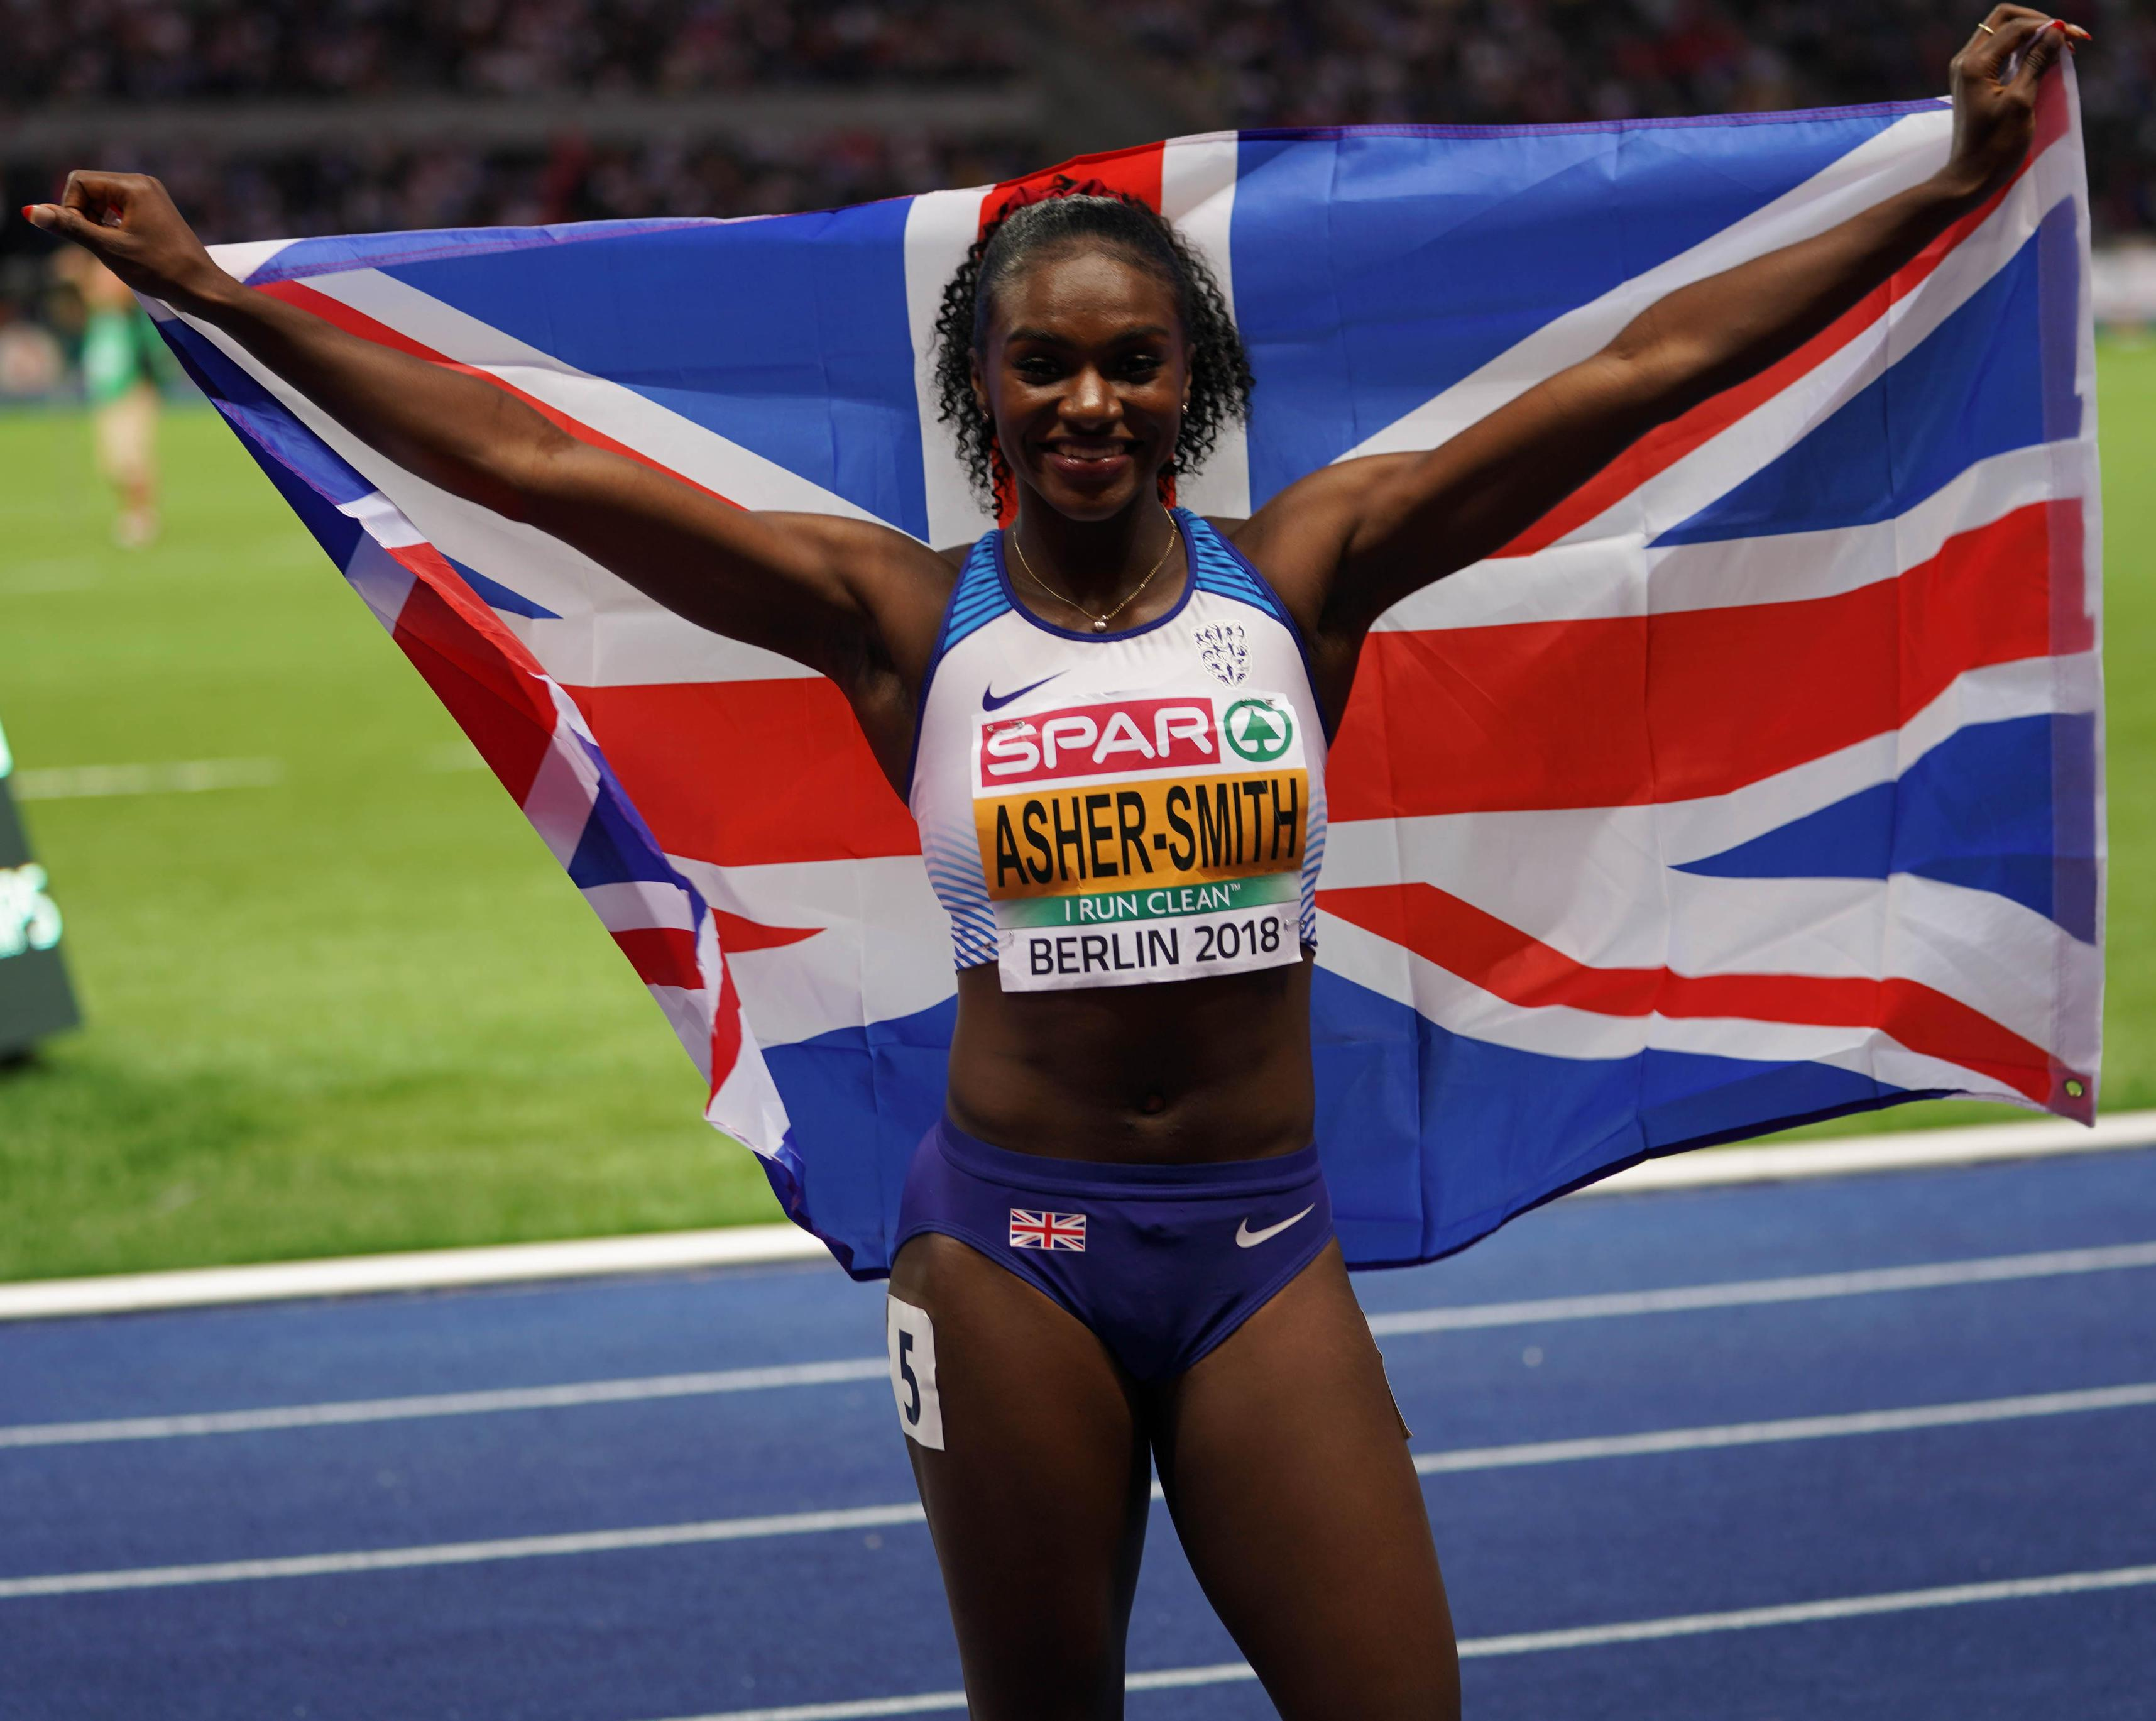 Dina Asher-Smith made history on Saturday with her European double